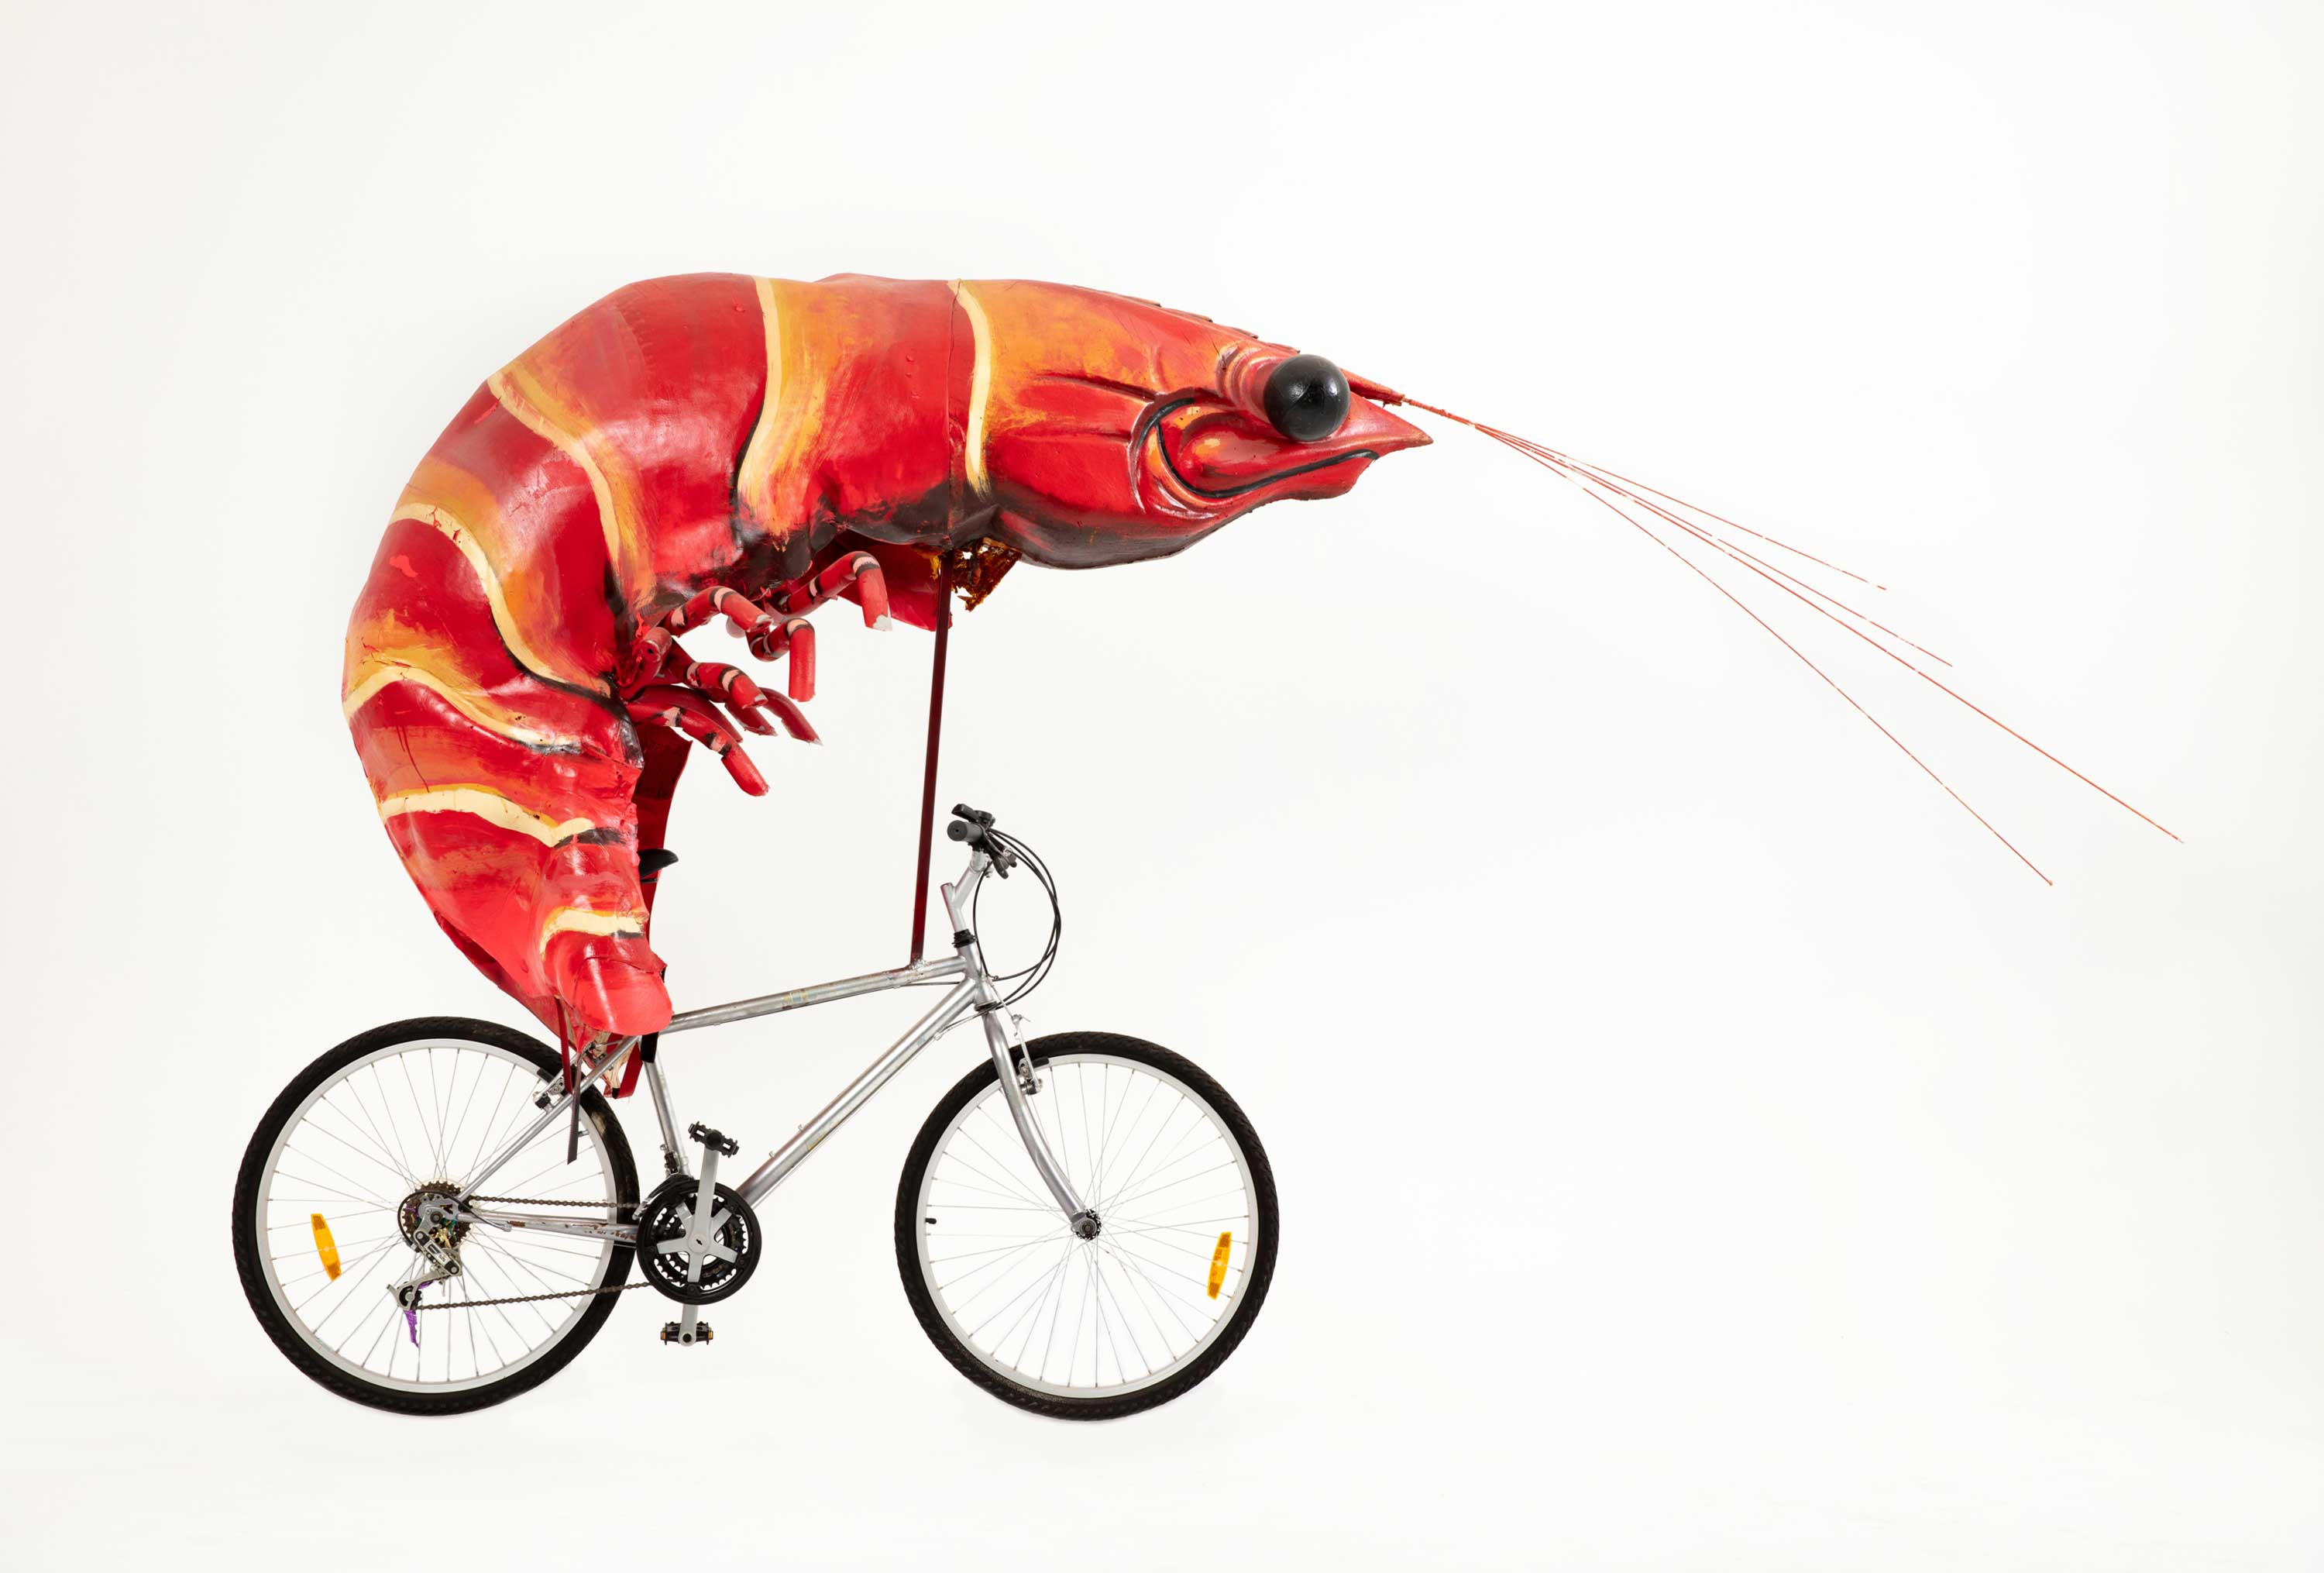 Sydney 2000 Olympic Games 20 Year Anniversary, prawn bike, Museums Discovery Centre Collection